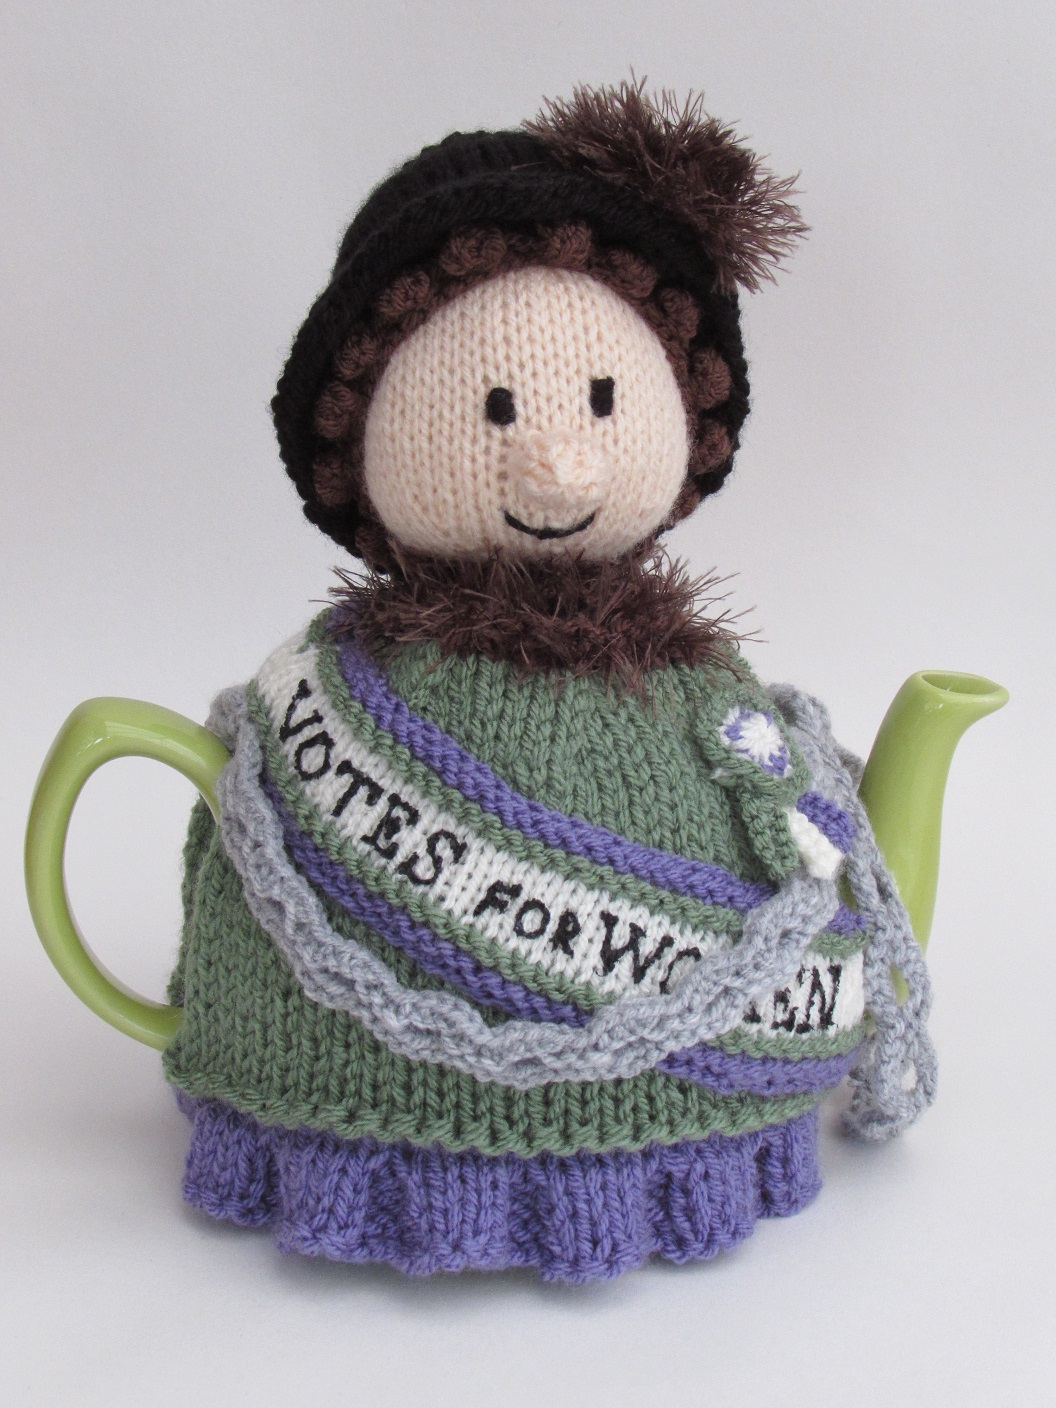 Suffragette tea cosy knitting pattern